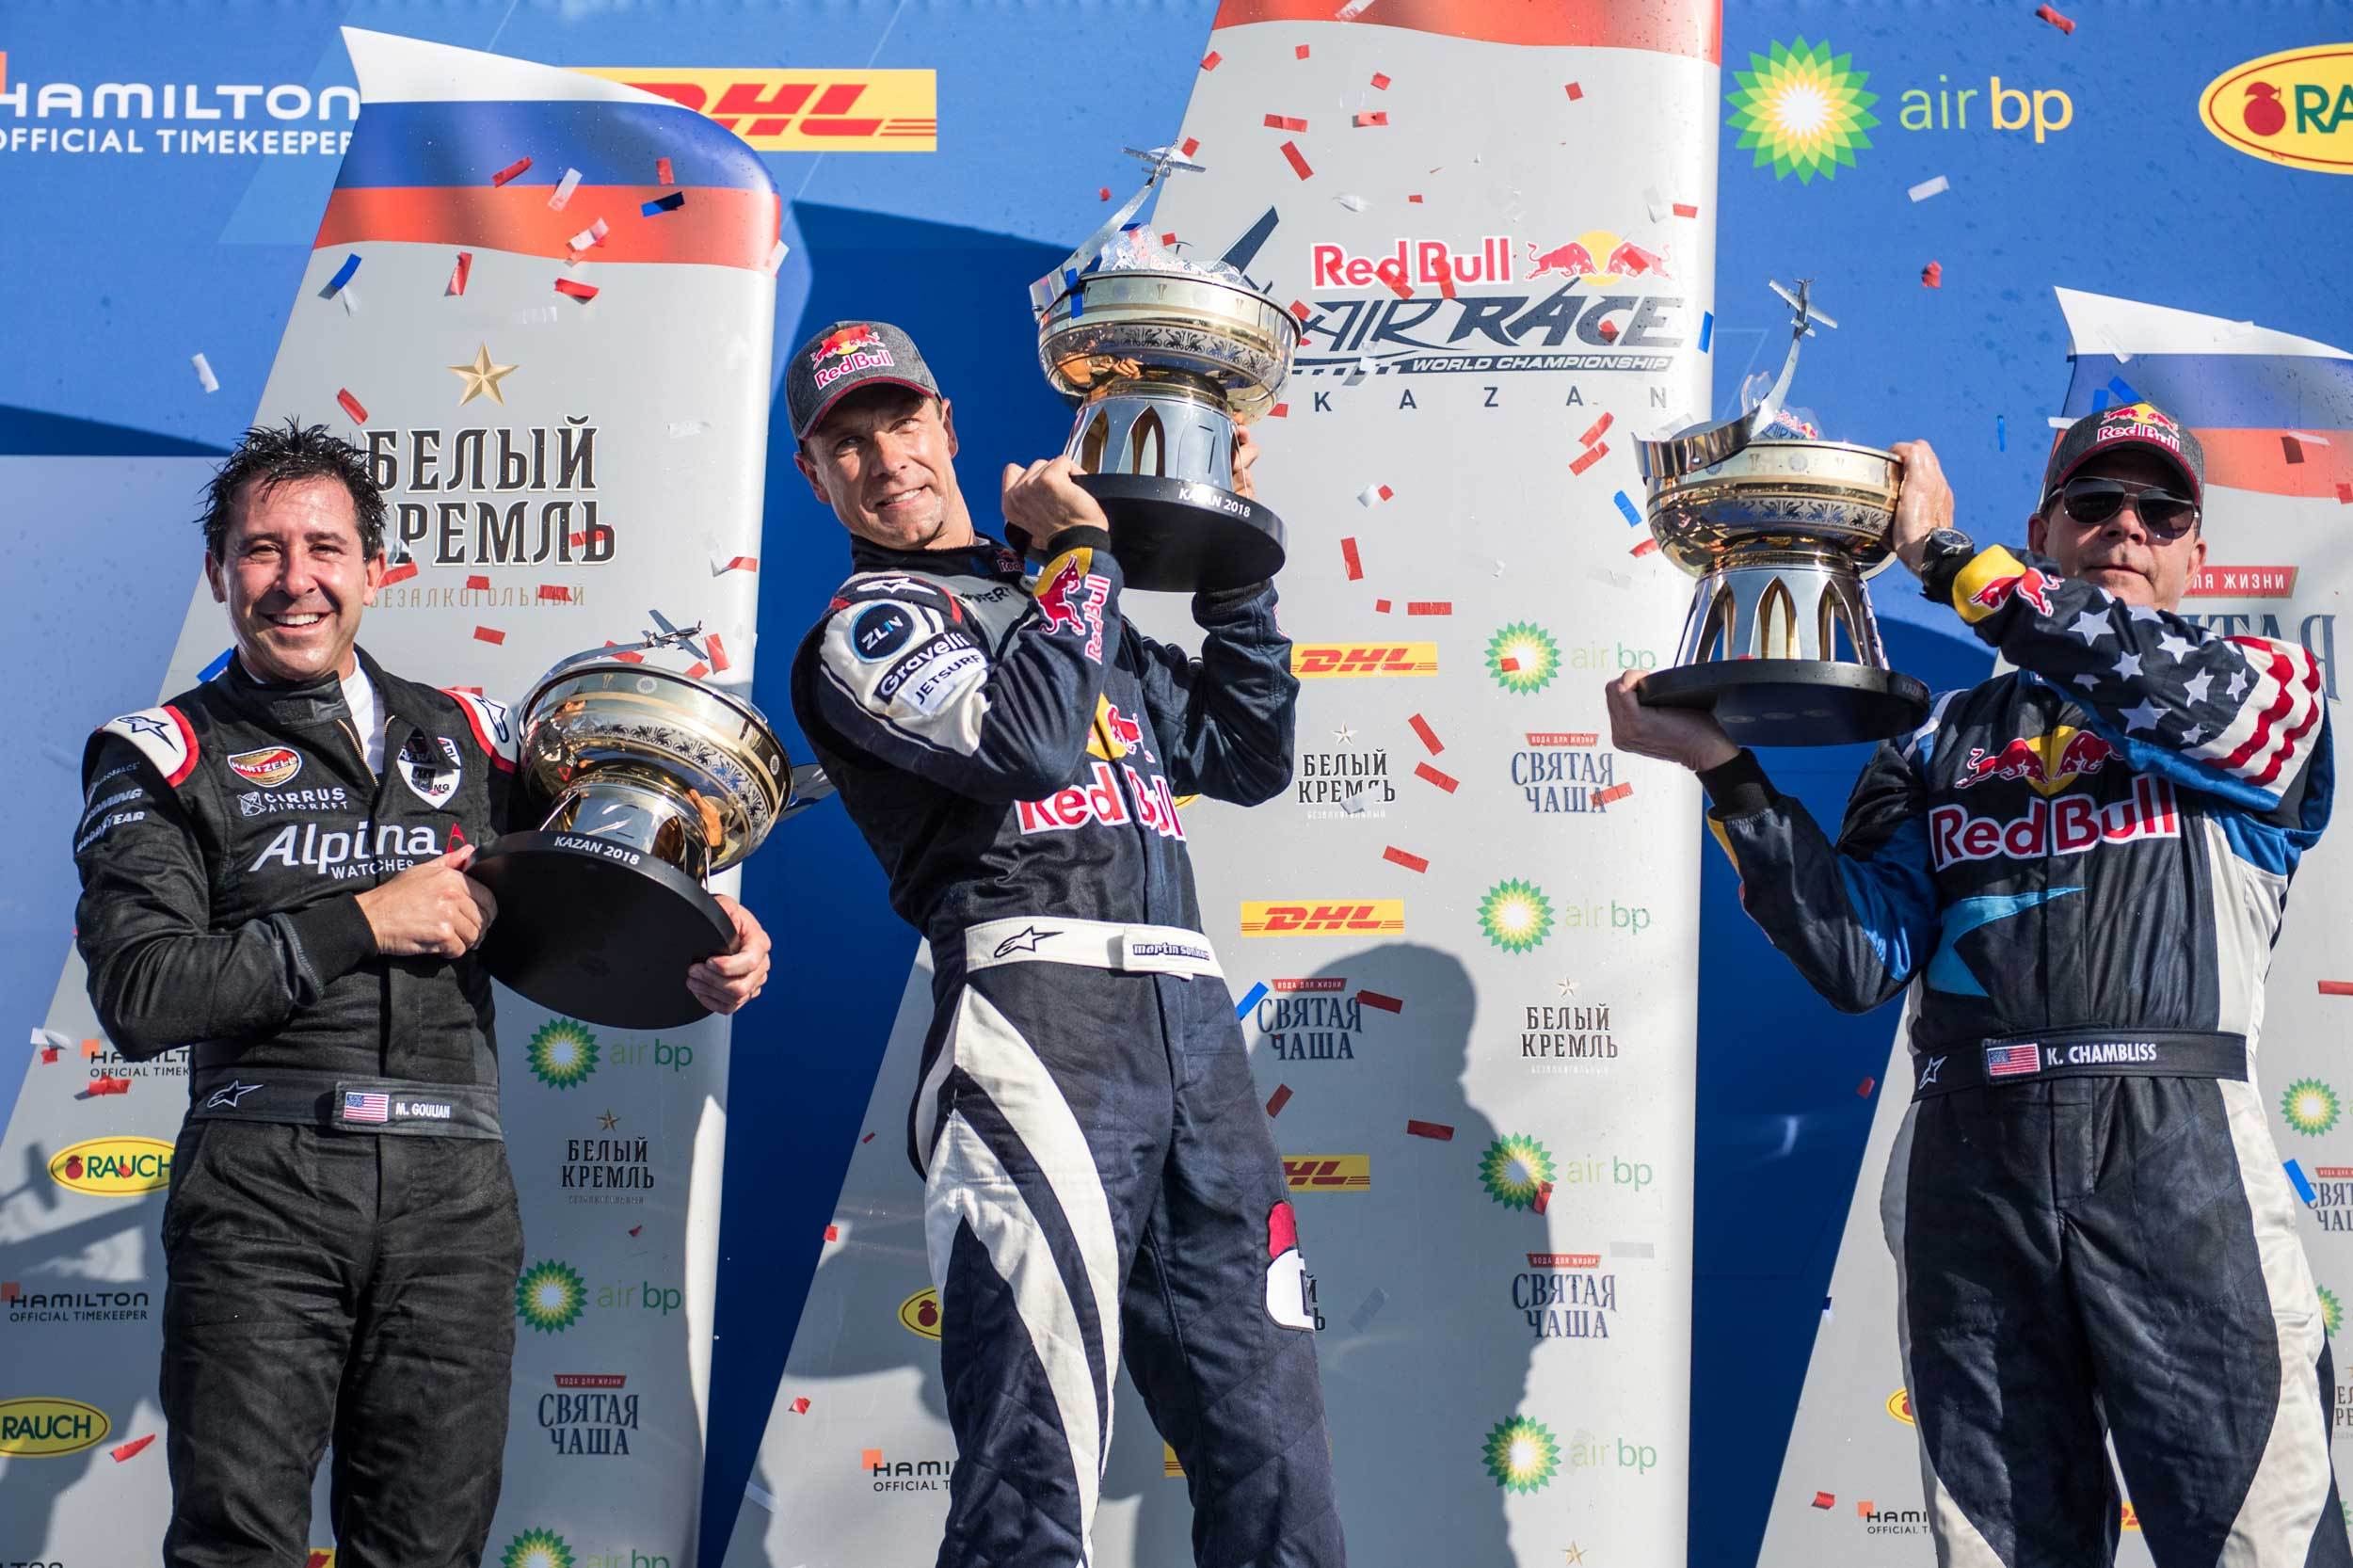 Red Bull air race Russia podium